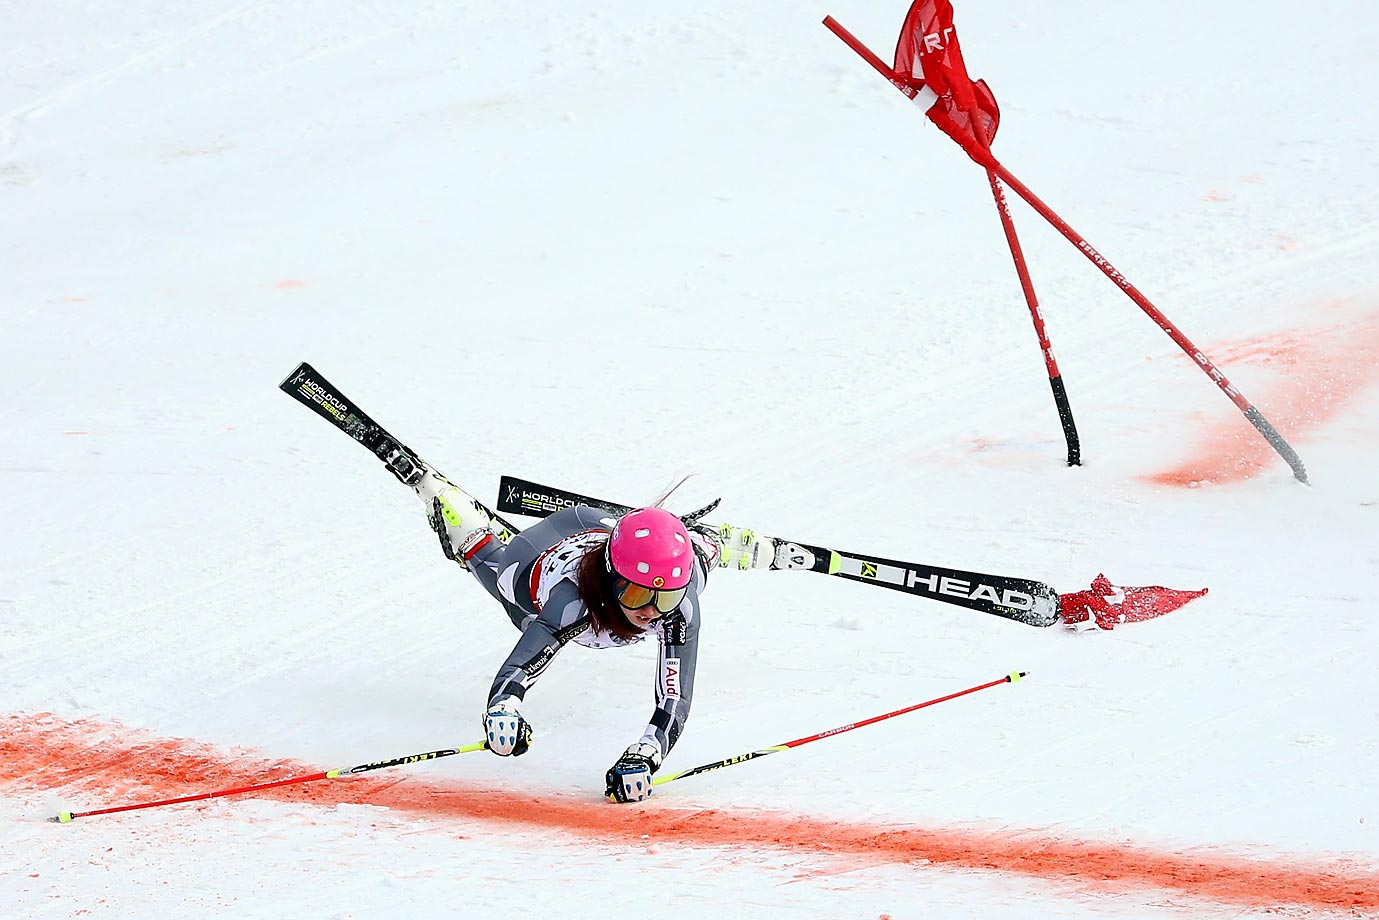 Candace Crawford crashes in her heat against Viktoria Rebensburg of Germany during the Nations Team Event of the 2015 FIS Alpine World Ski Championships.